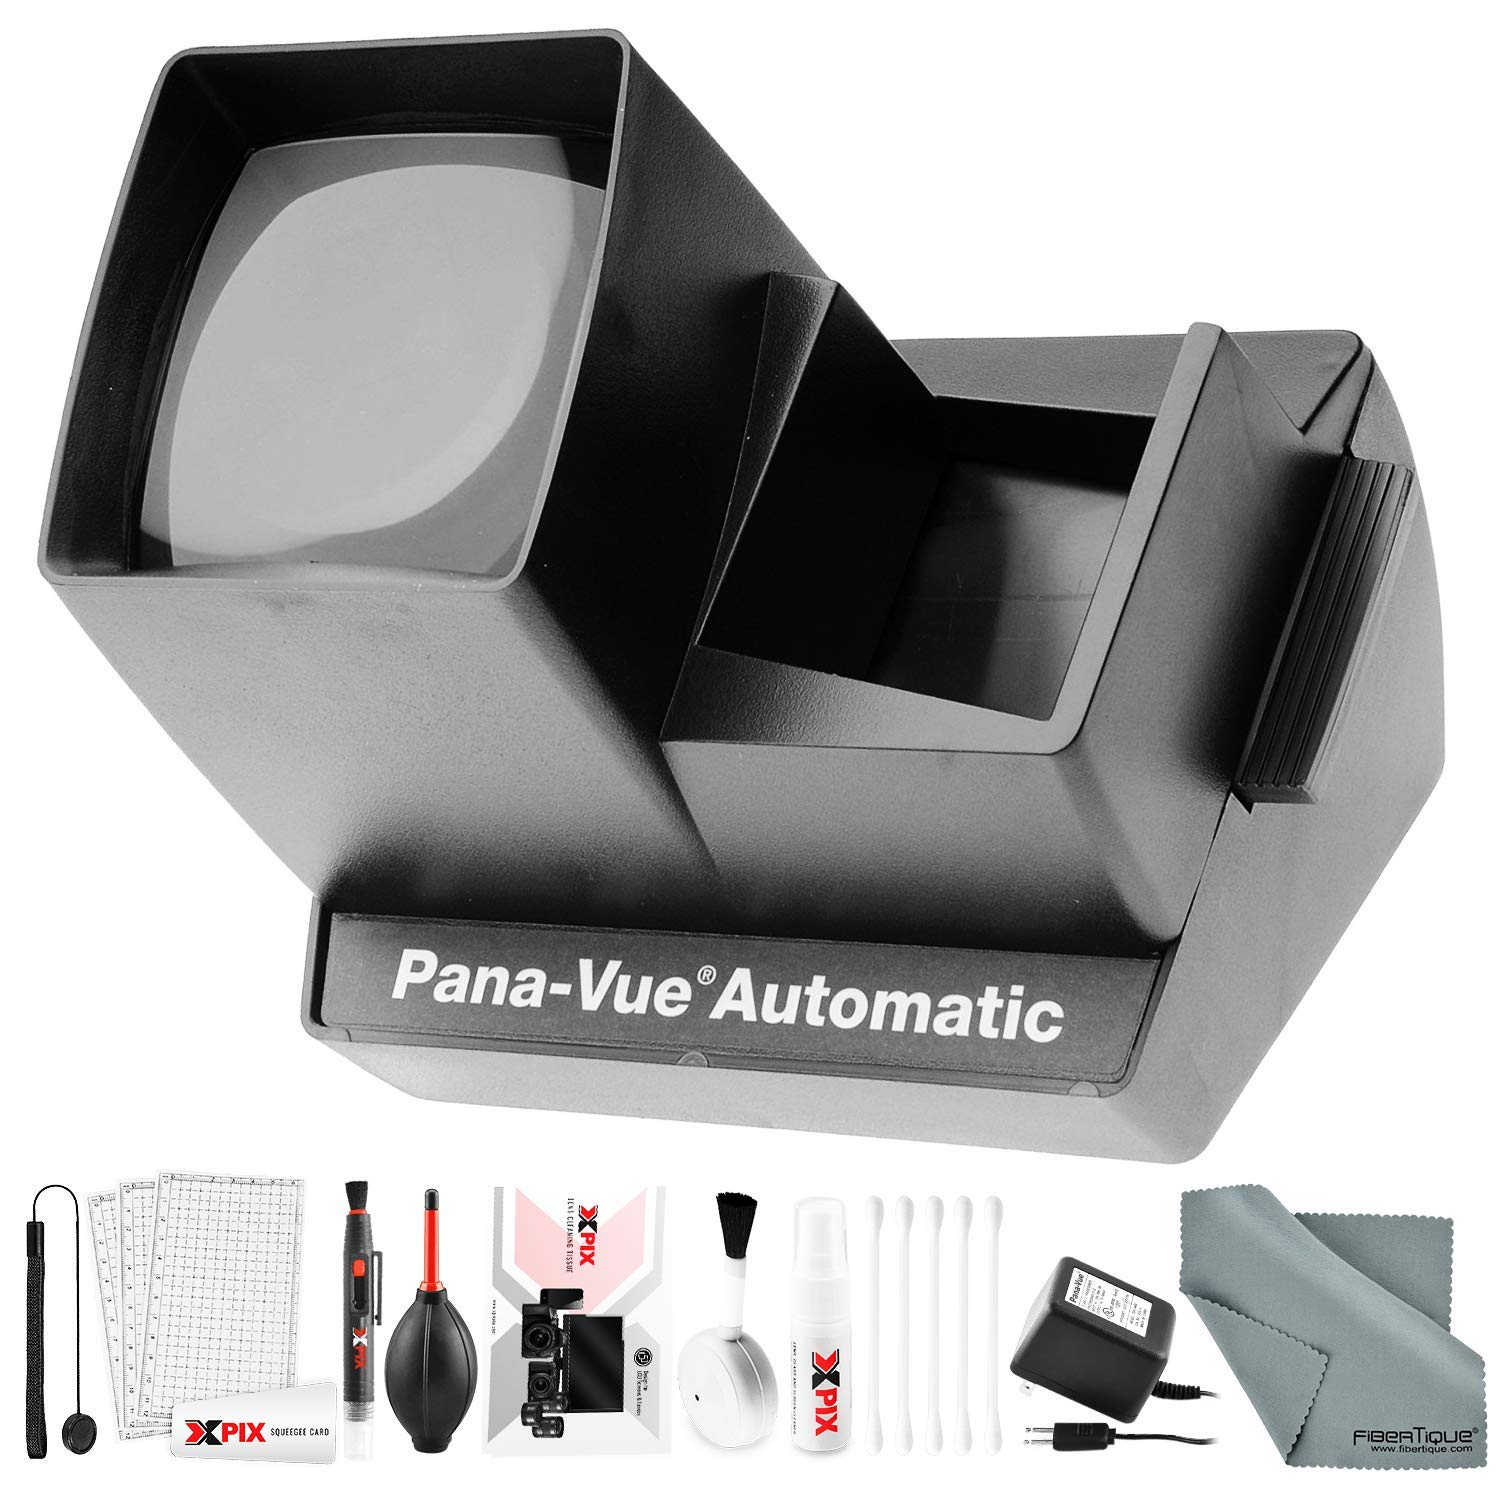 Pana-Vue 6566 Automatic Slide Viewer with Transformer and Deluxe Cleaning Kit by Pana-Vue / Photo Savings